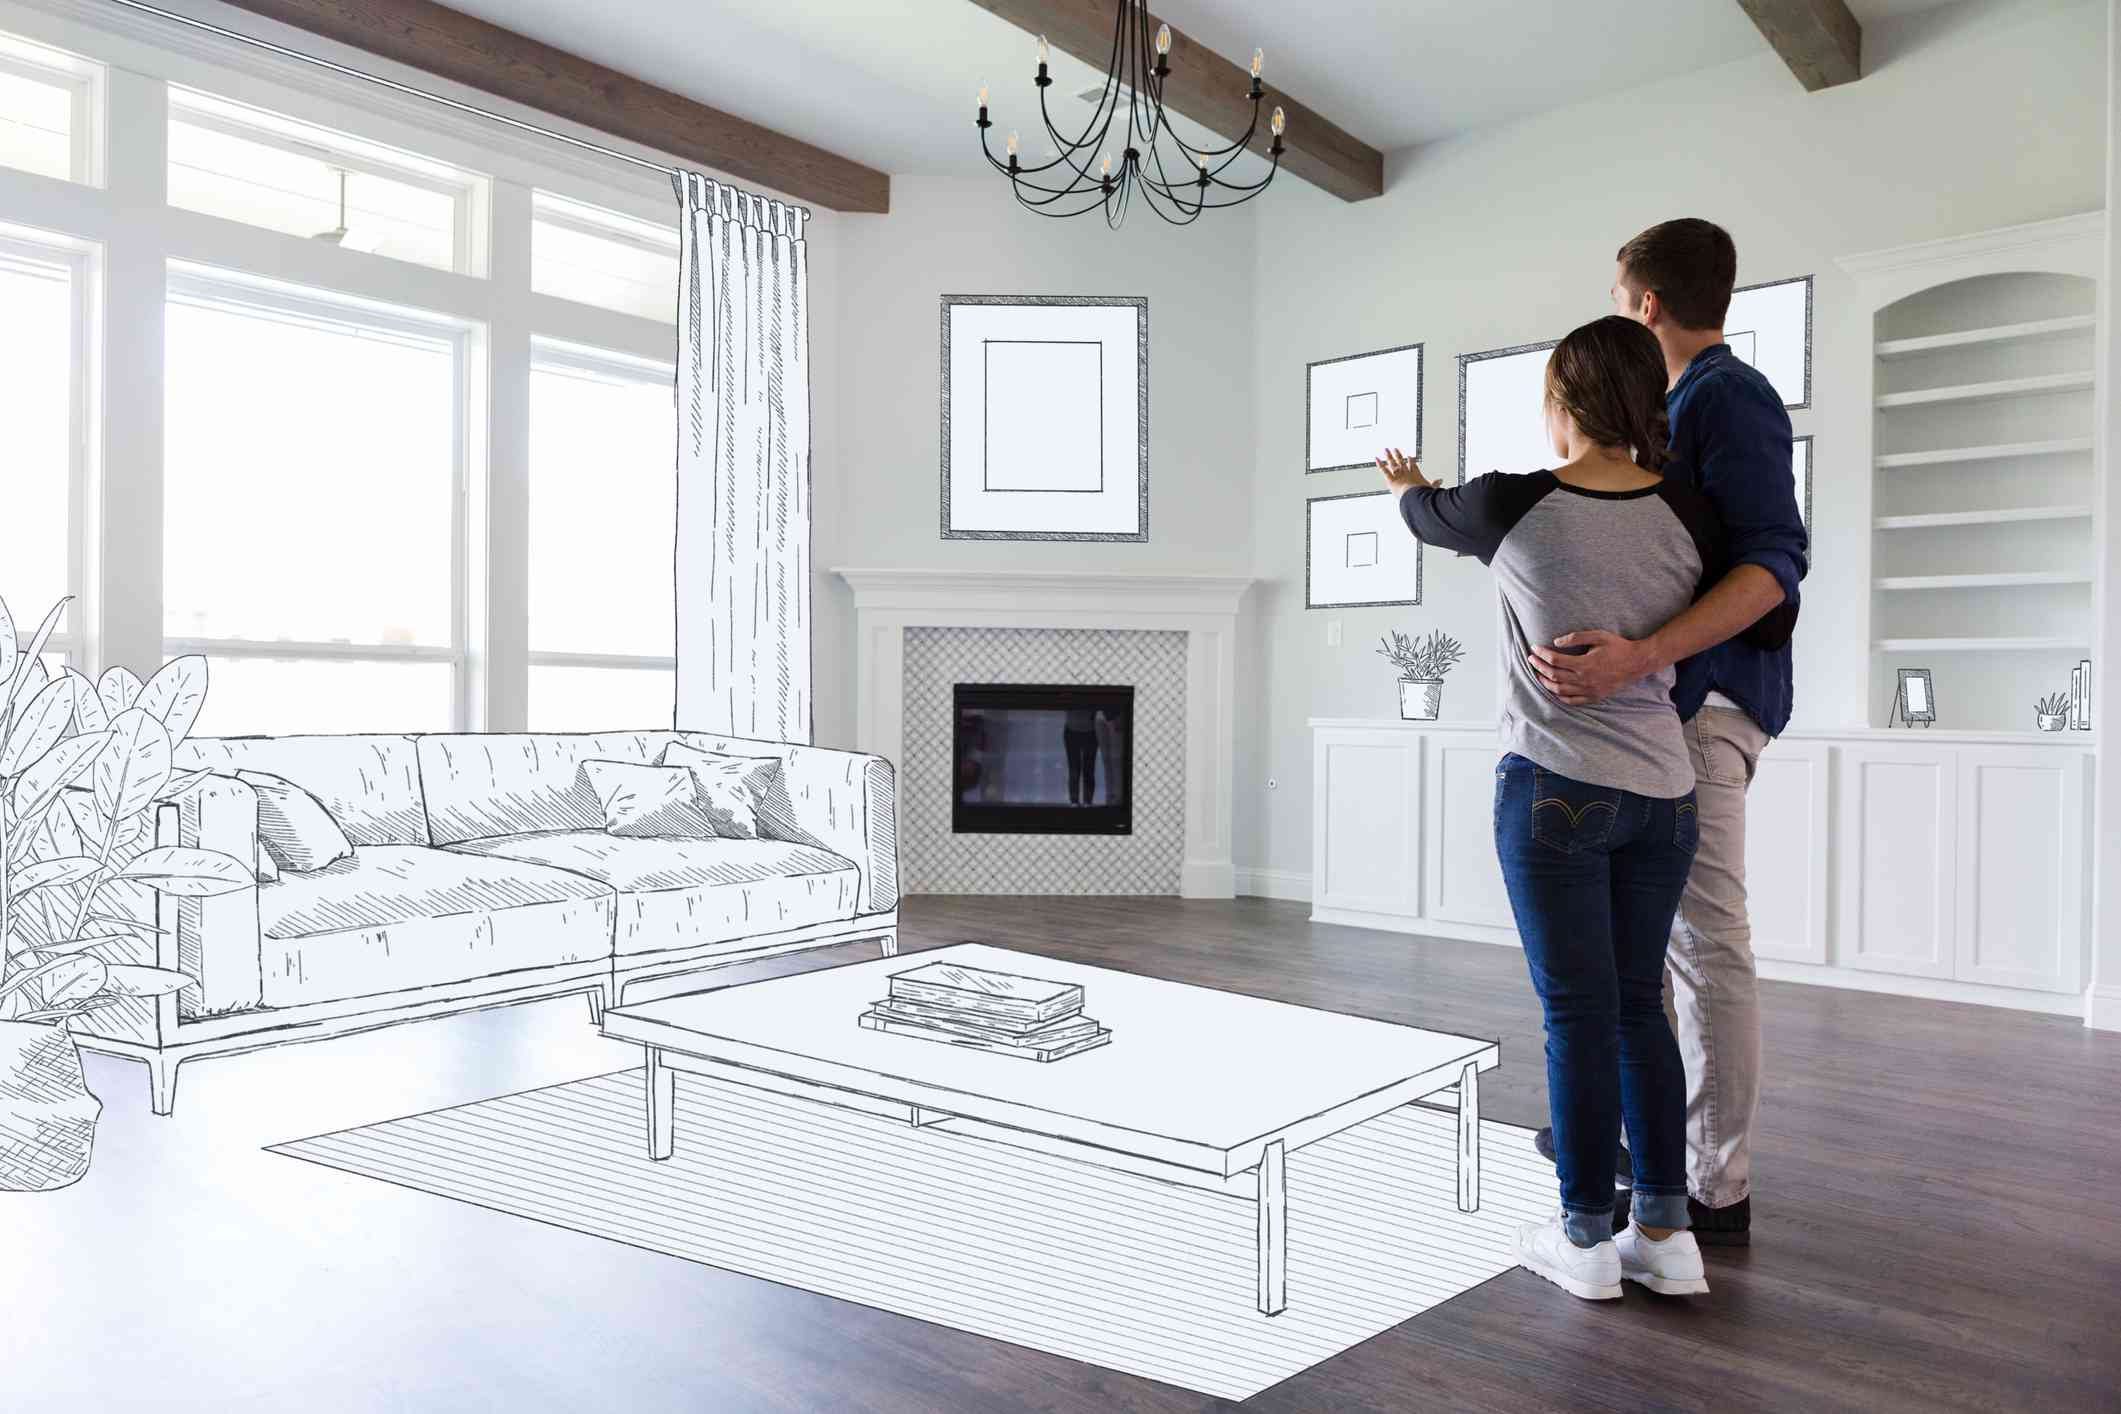 A couple standing in an empty room with home interior decorations sketched in.